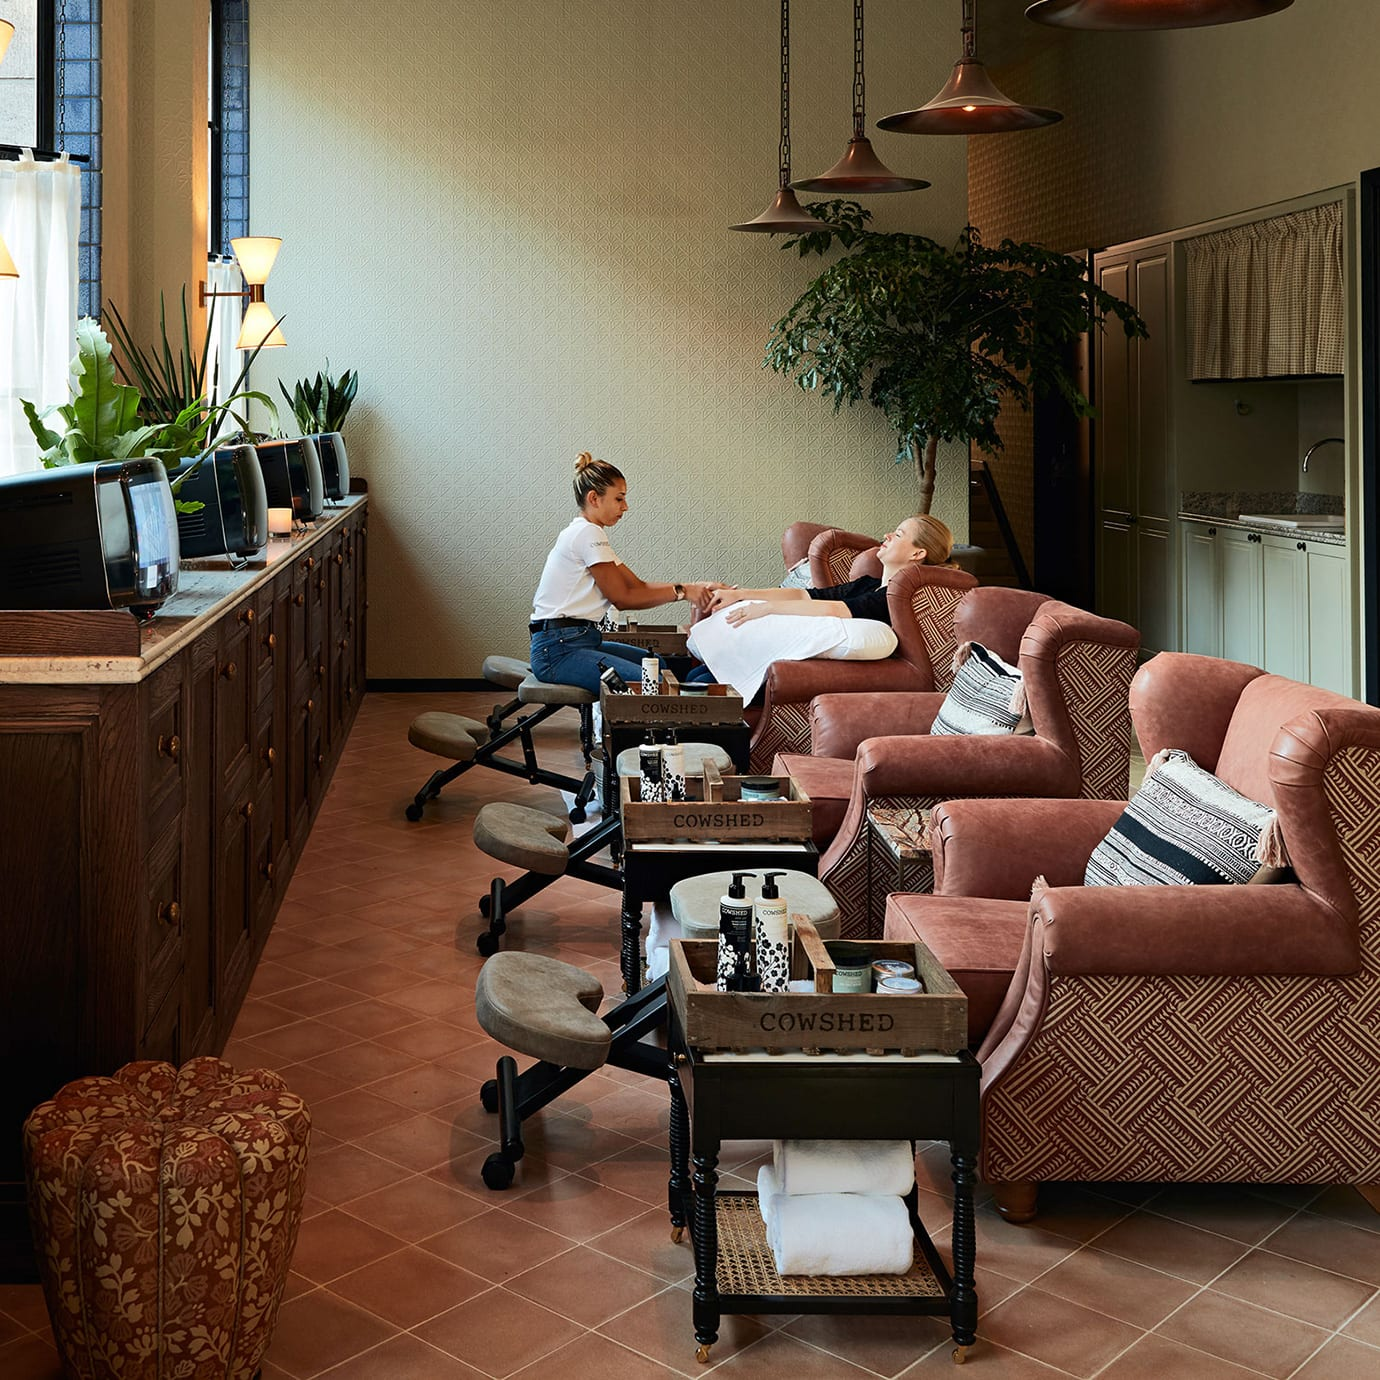 A row of treatment chairs in a spa with a woman receiving treatments from other women.